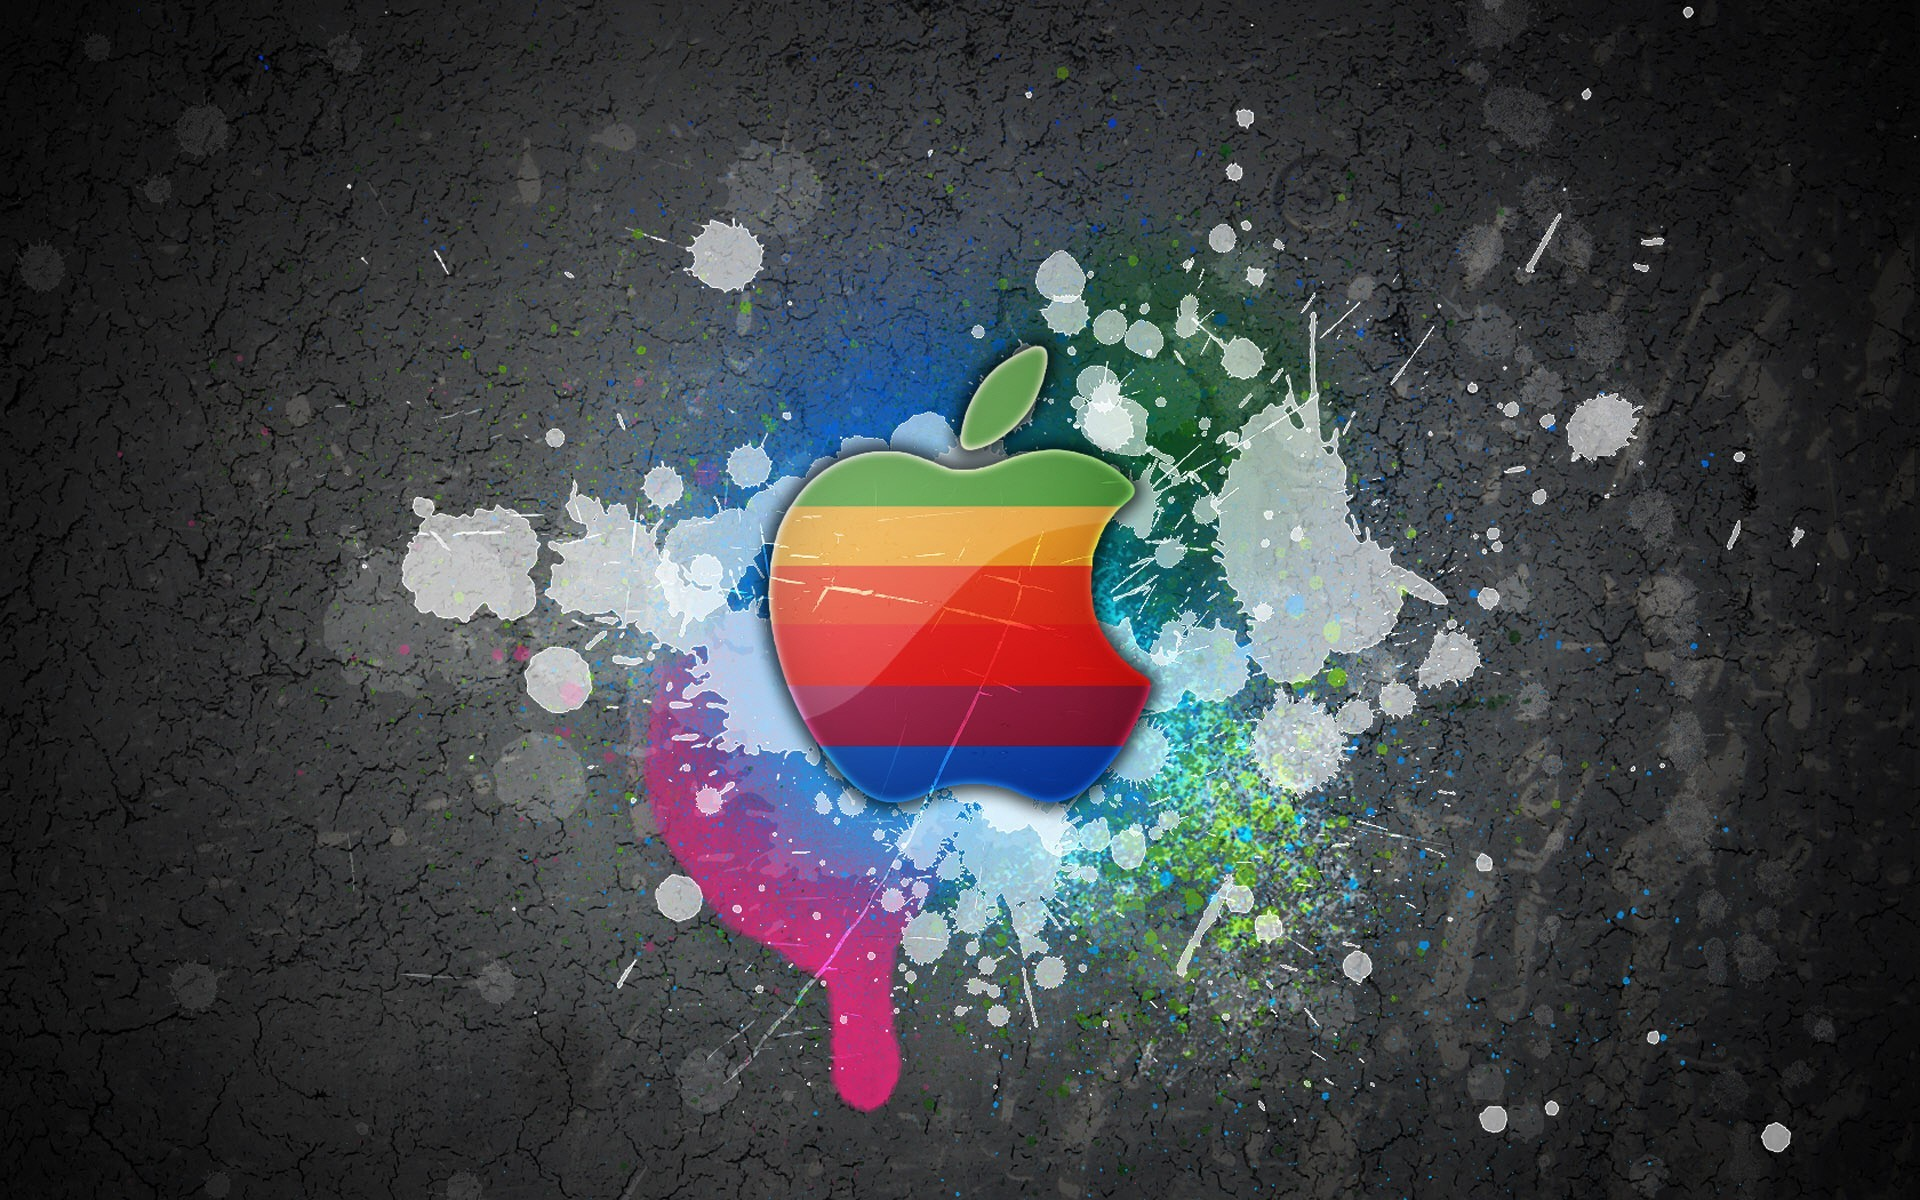 rainbows logos apple inc paint splatter HD Wallpaper